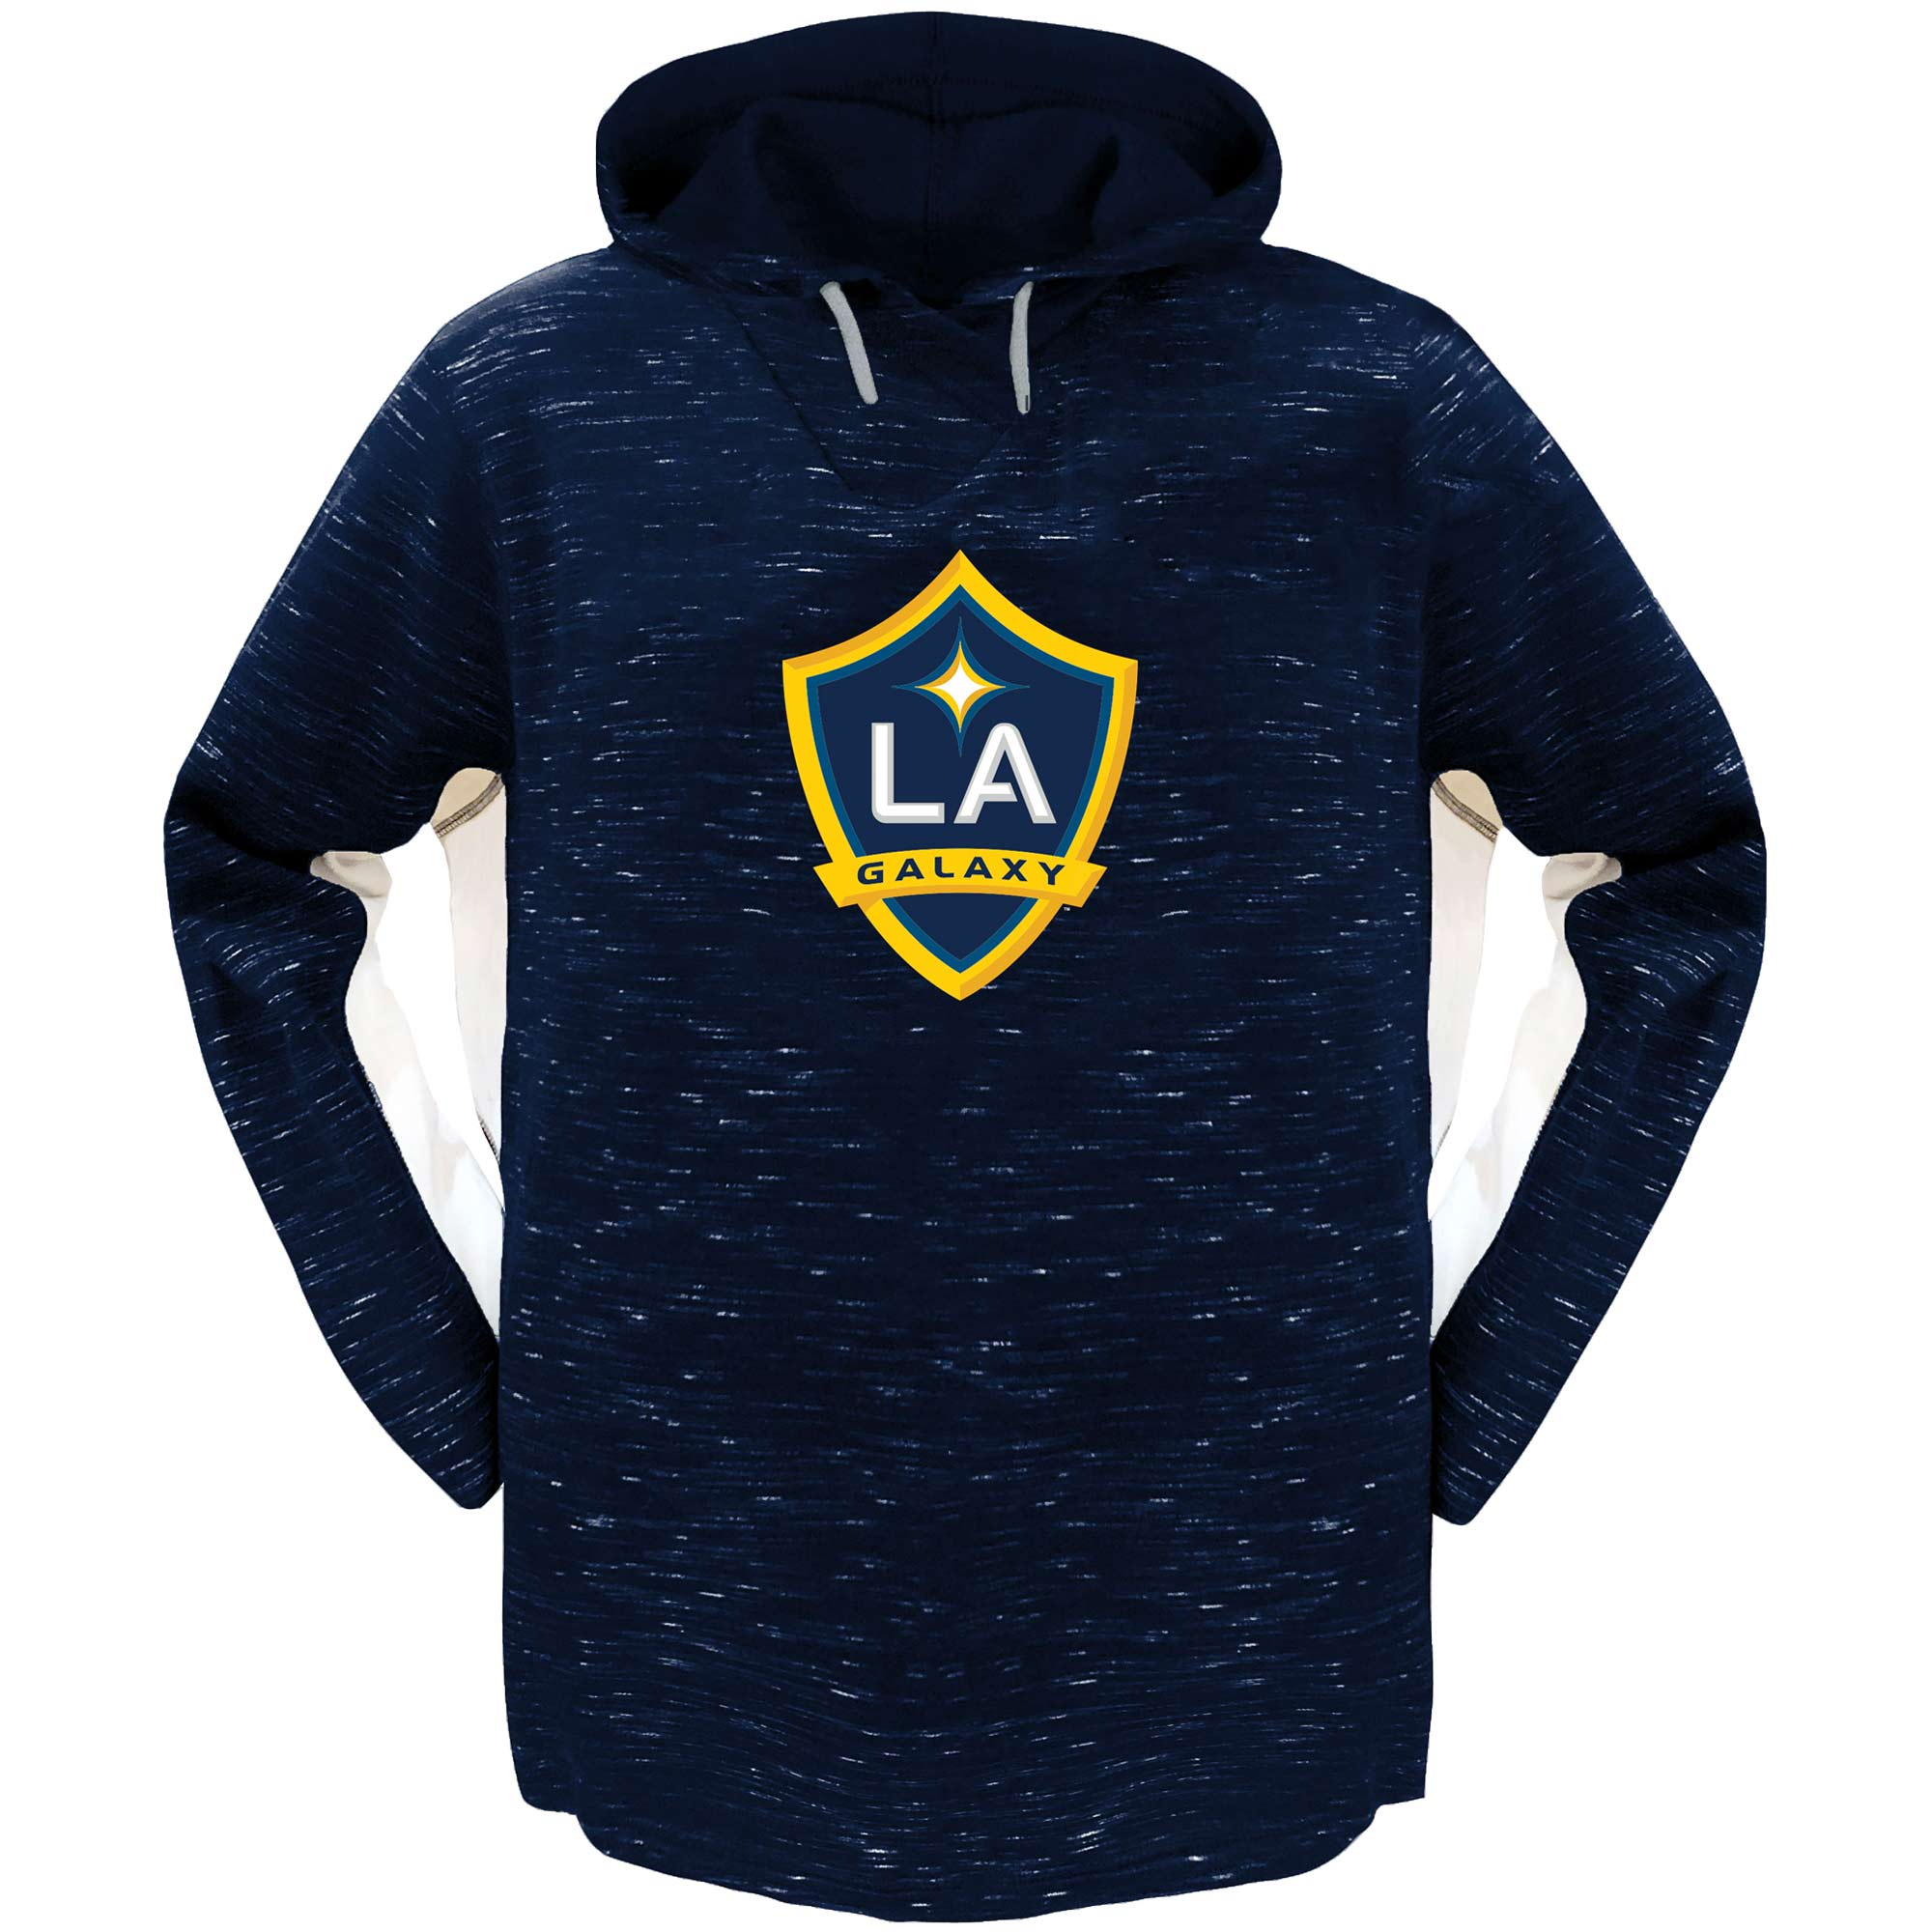 LA Galaxy Majestic Women's Plus Size Contrast Heathered Pullover Hoodie - Navy/White